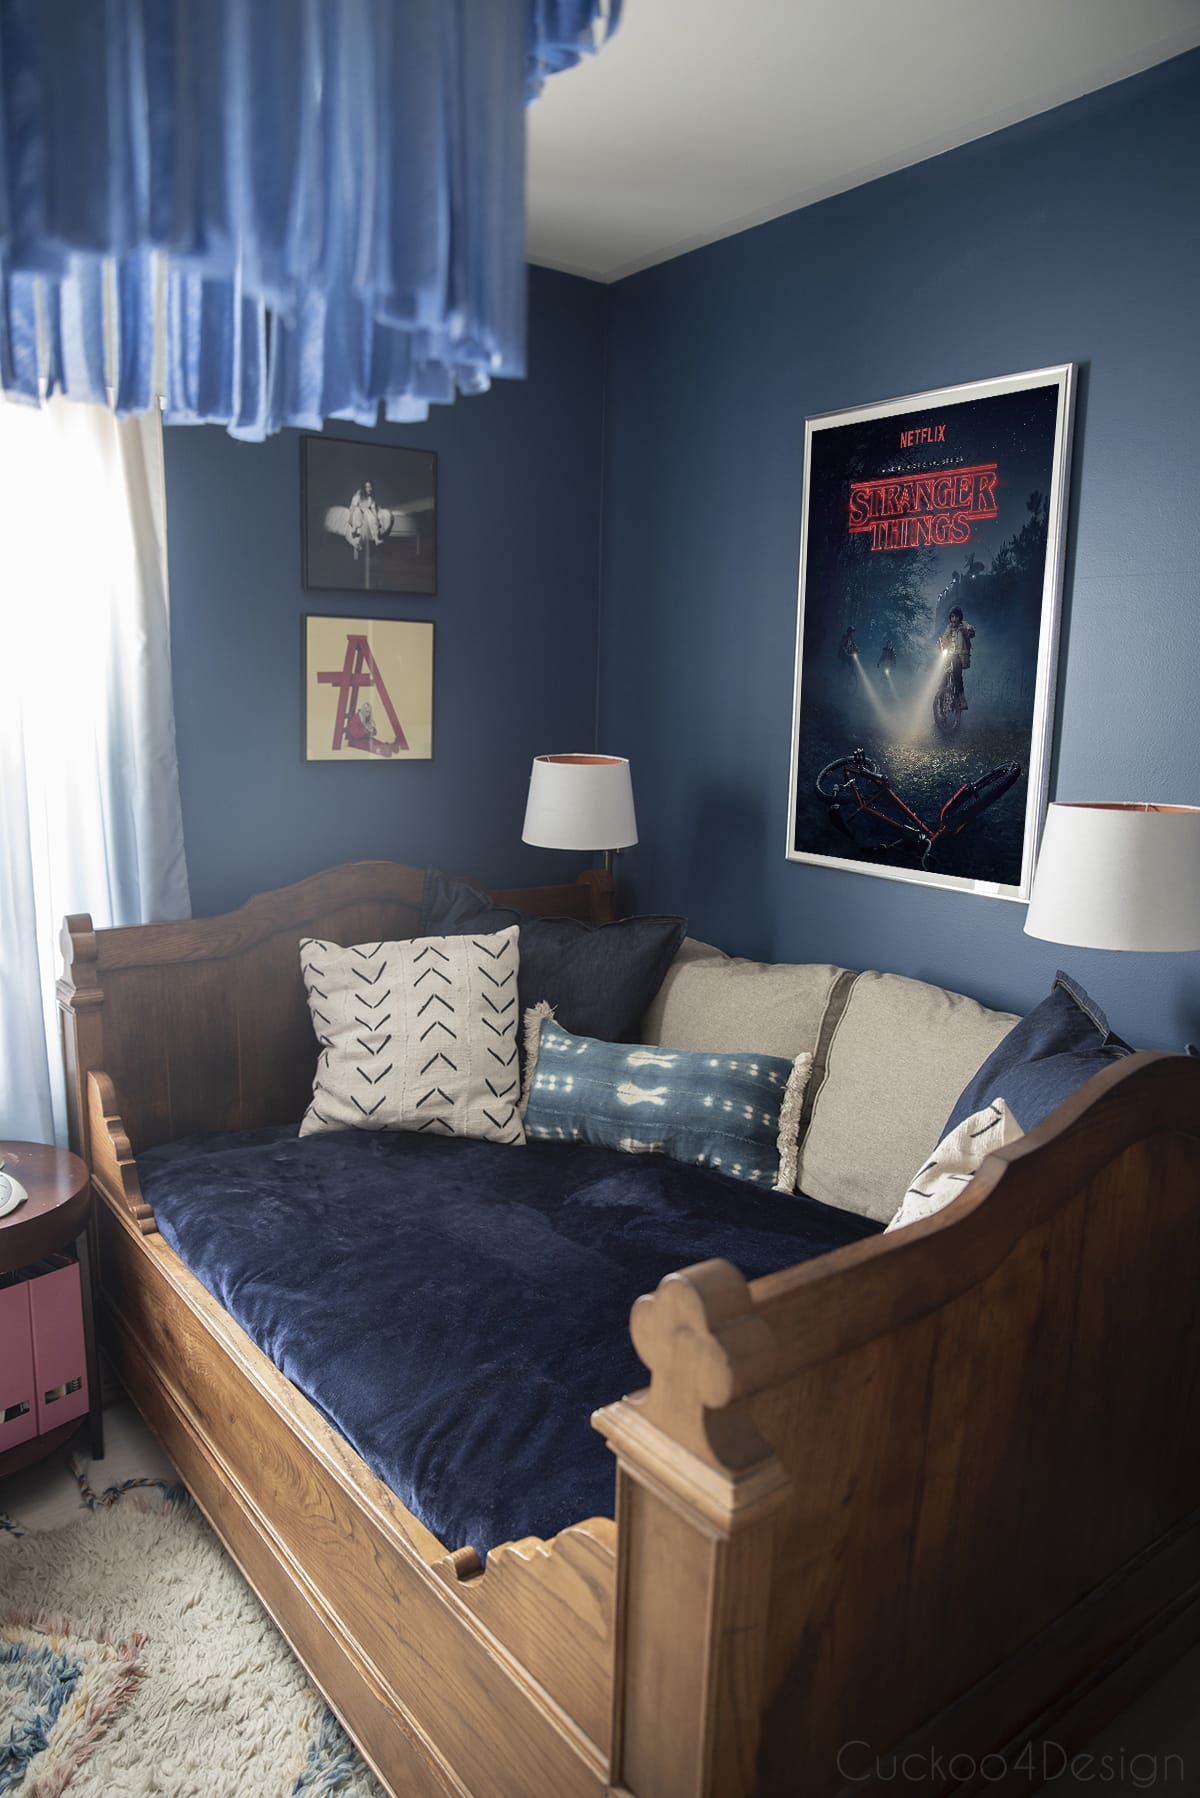 stranger things poster with French antique bed